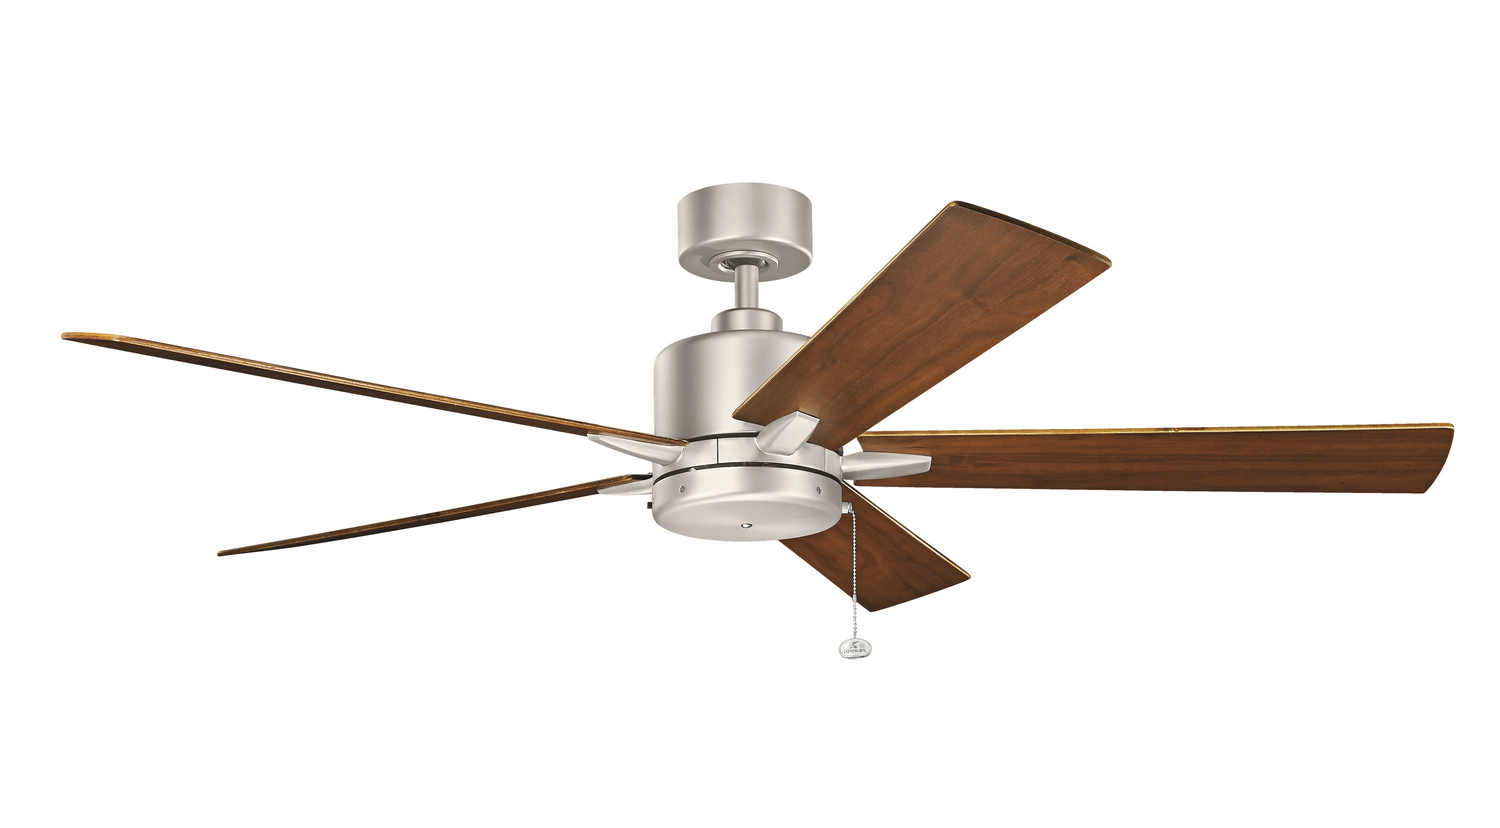 60 inchCeiling Fan from the Bowen collection by Kichler 330243NI